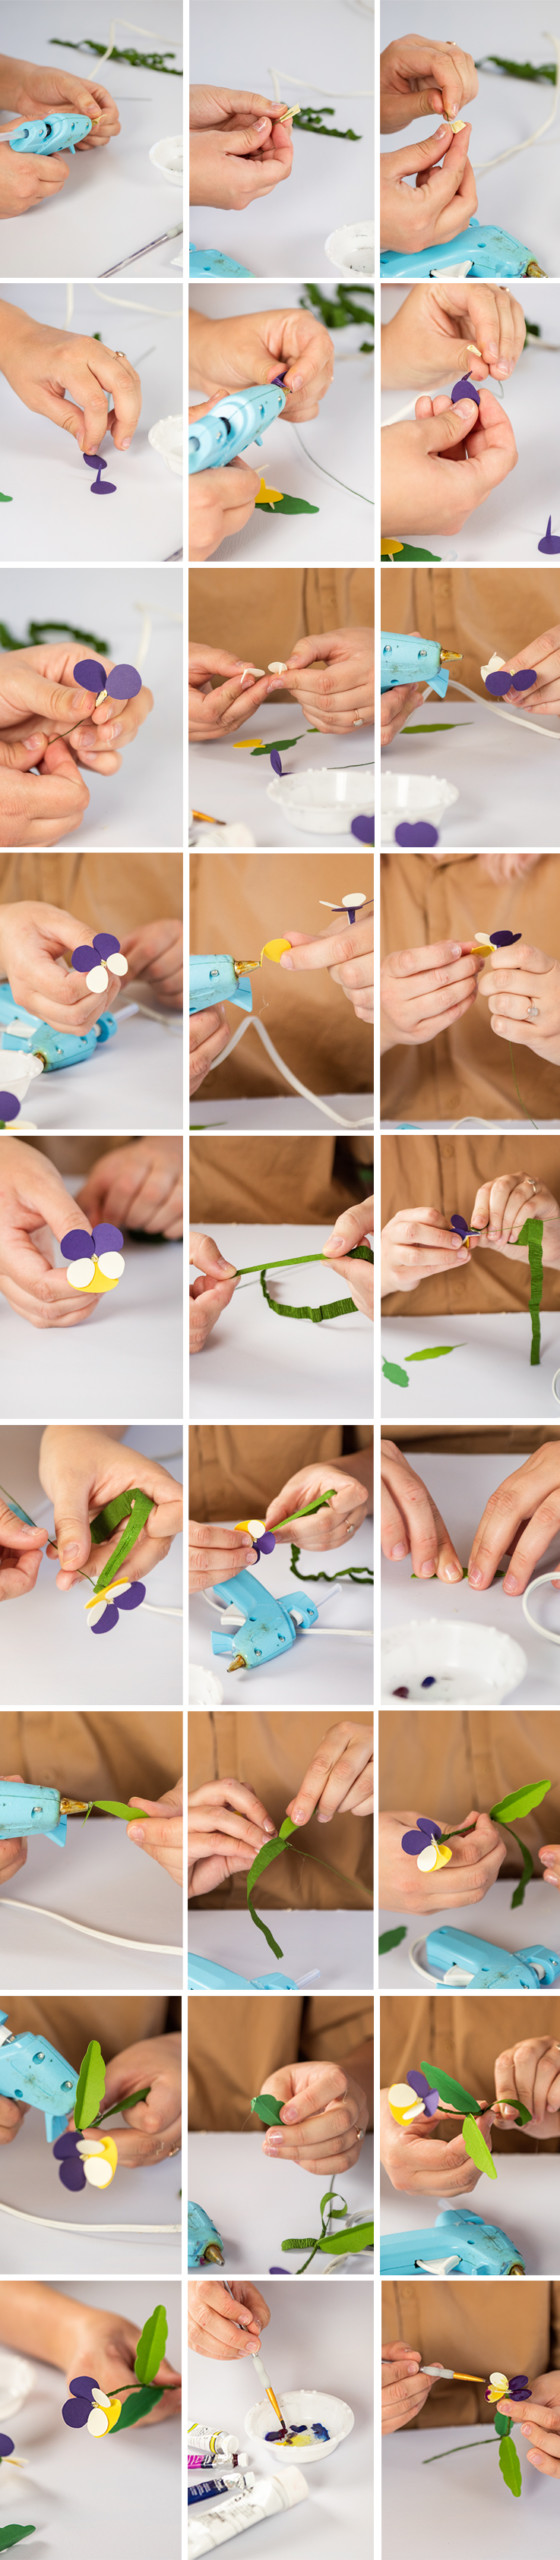 step by step instructional photos of the pansy making process.